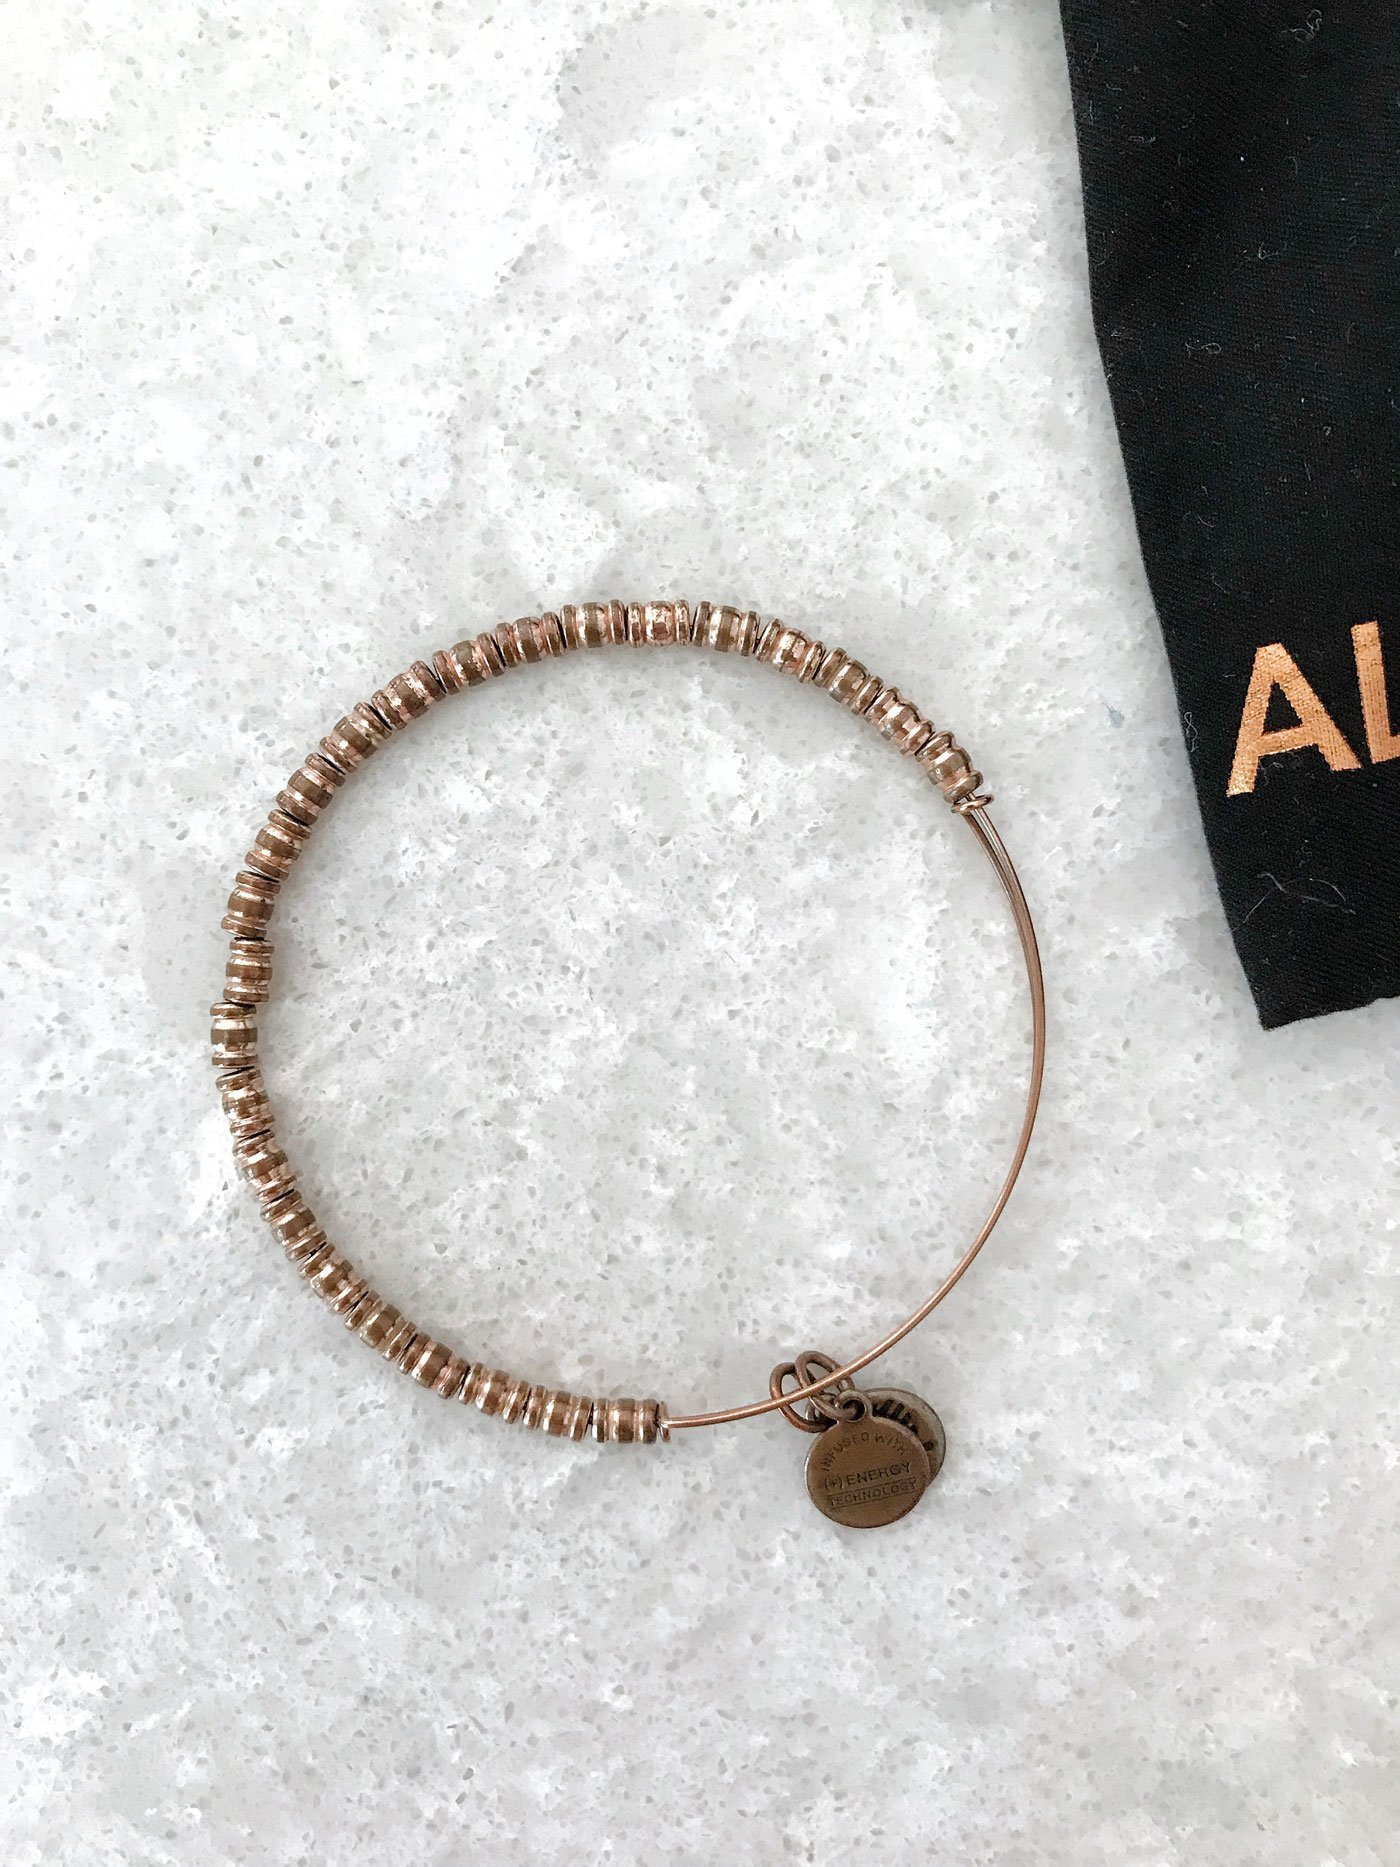 tarnished alex and ani bangle